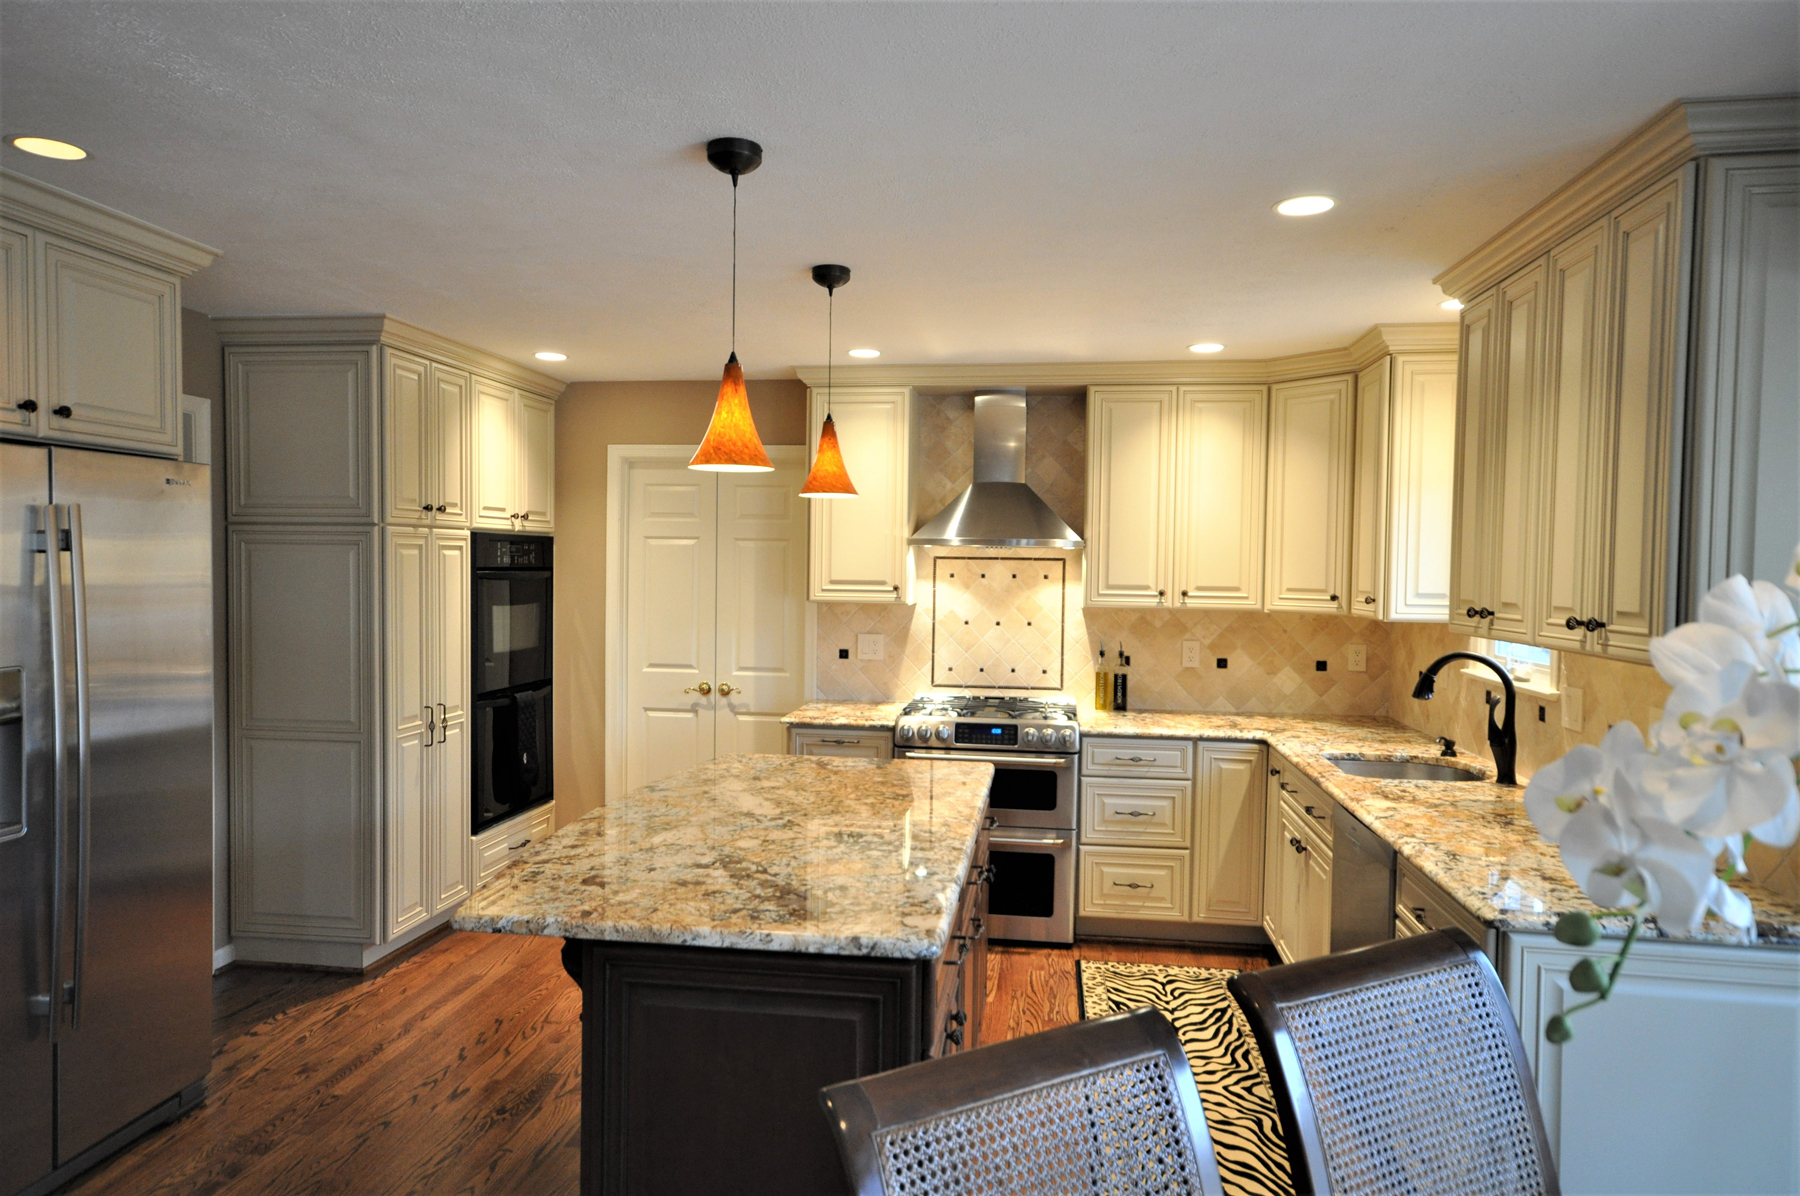 Full Kitchen Remodel with Cream Cabinets in Montgomery County, MD